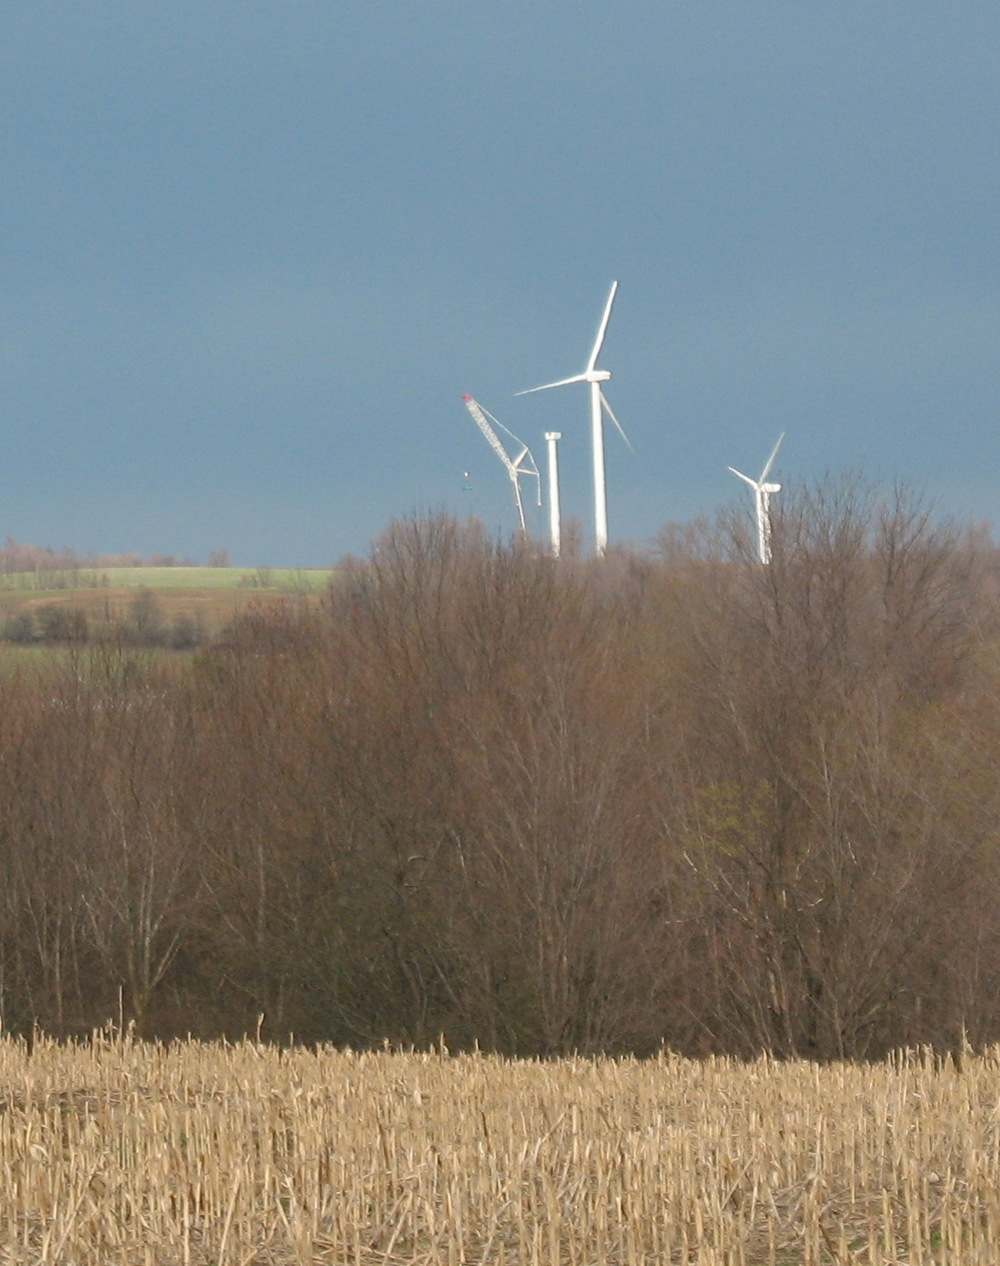 Changing-Windmill-Blades.jpg